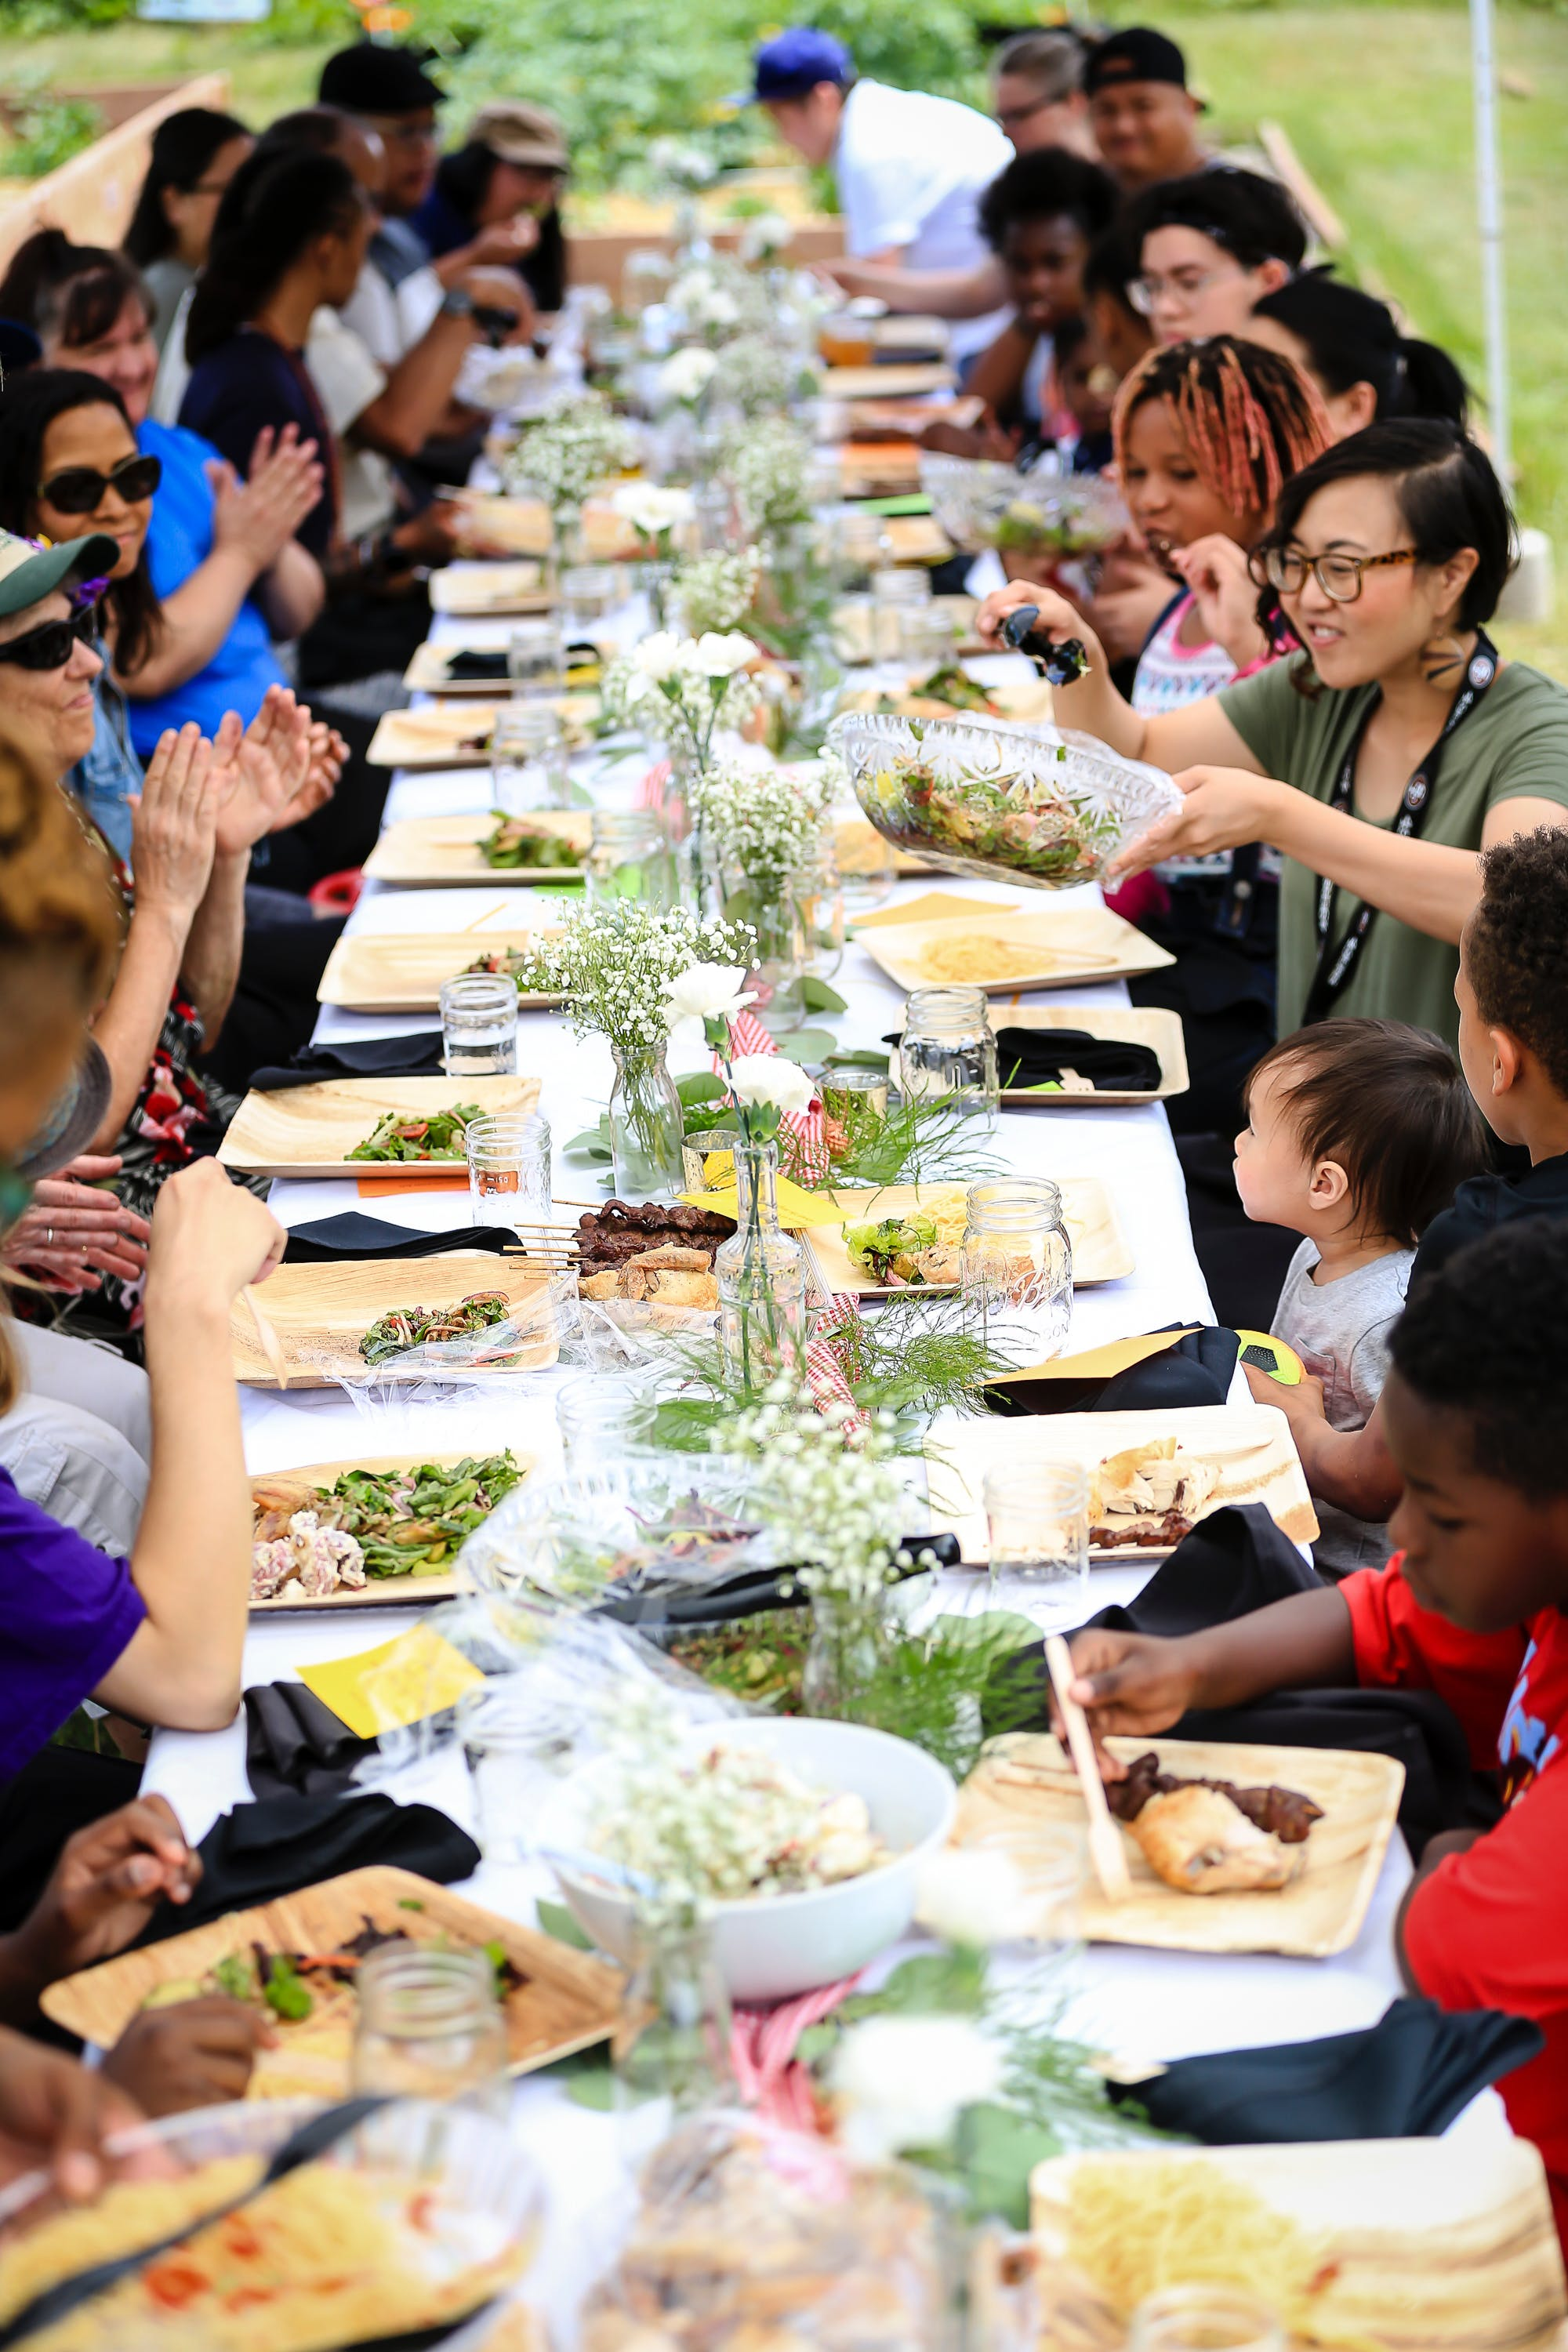 <p><em>Kathy Mouacheupao&#39;s inclusive project &quot;The Gathering&quot; brings together the diverse community of Rondo with The Gathering, a series of art and food events in community gardens.</em></p>